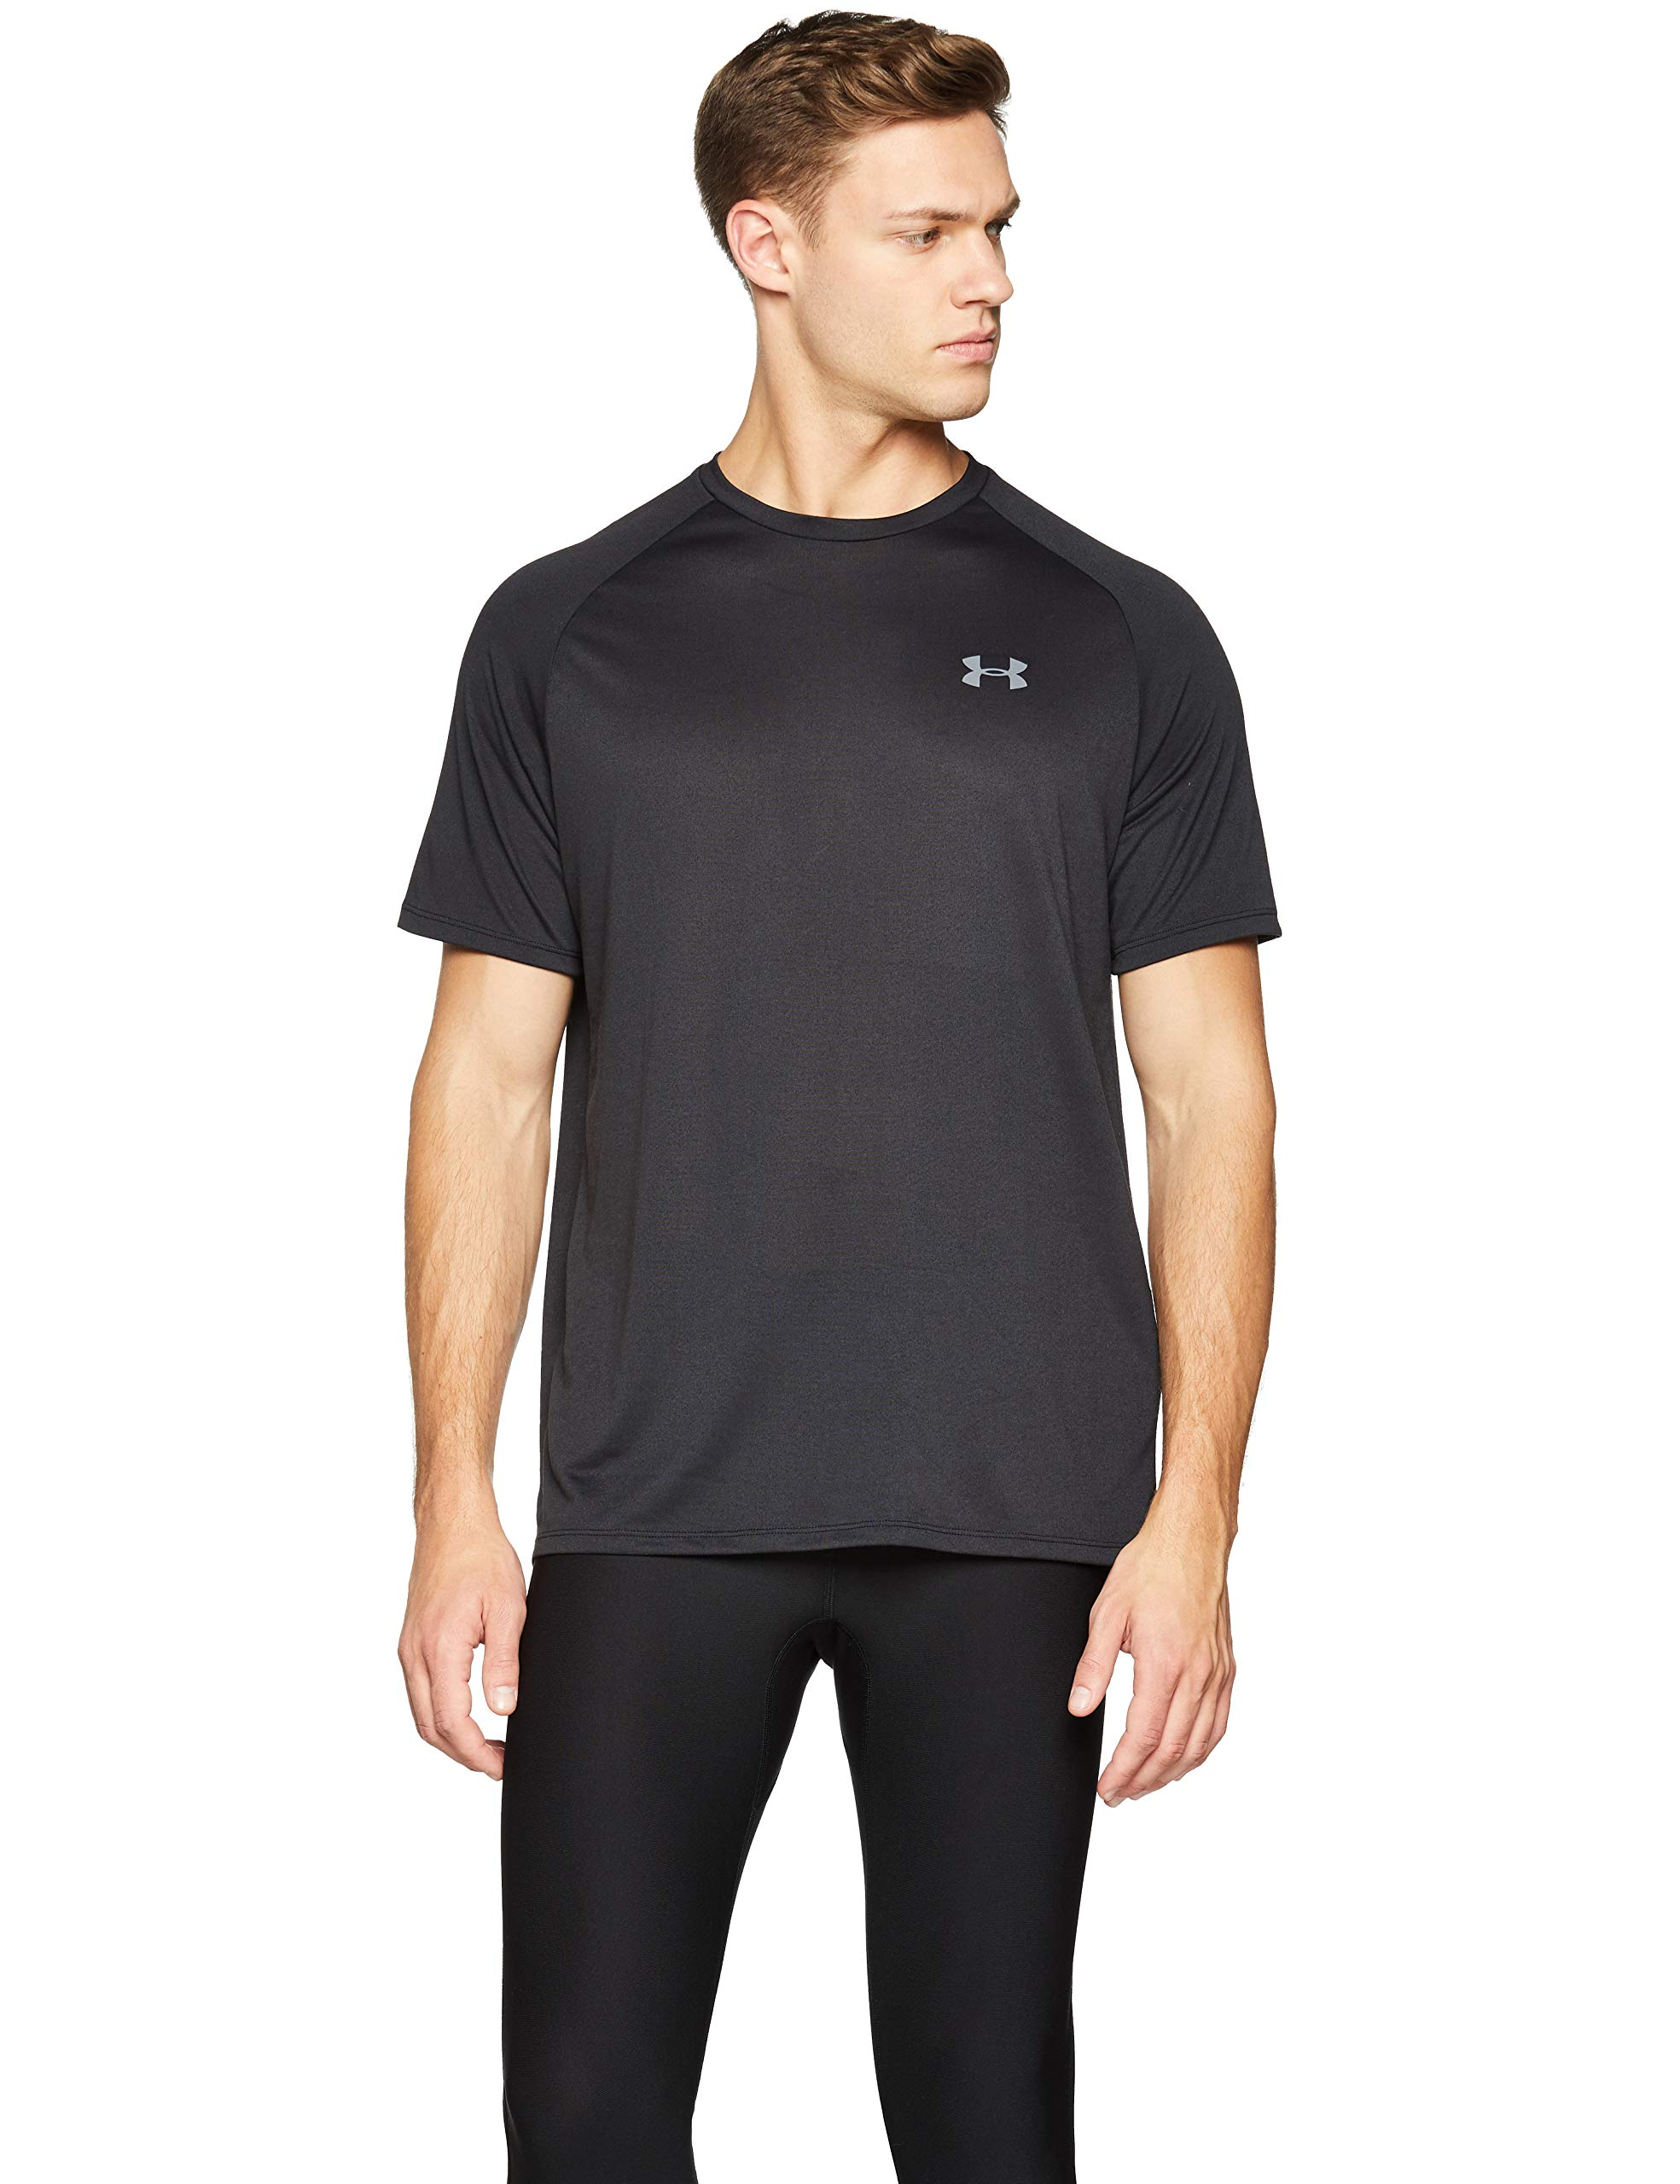 Under Armour Men's UA Tech Short Sleeve Tee 2.0, Black, XS-R